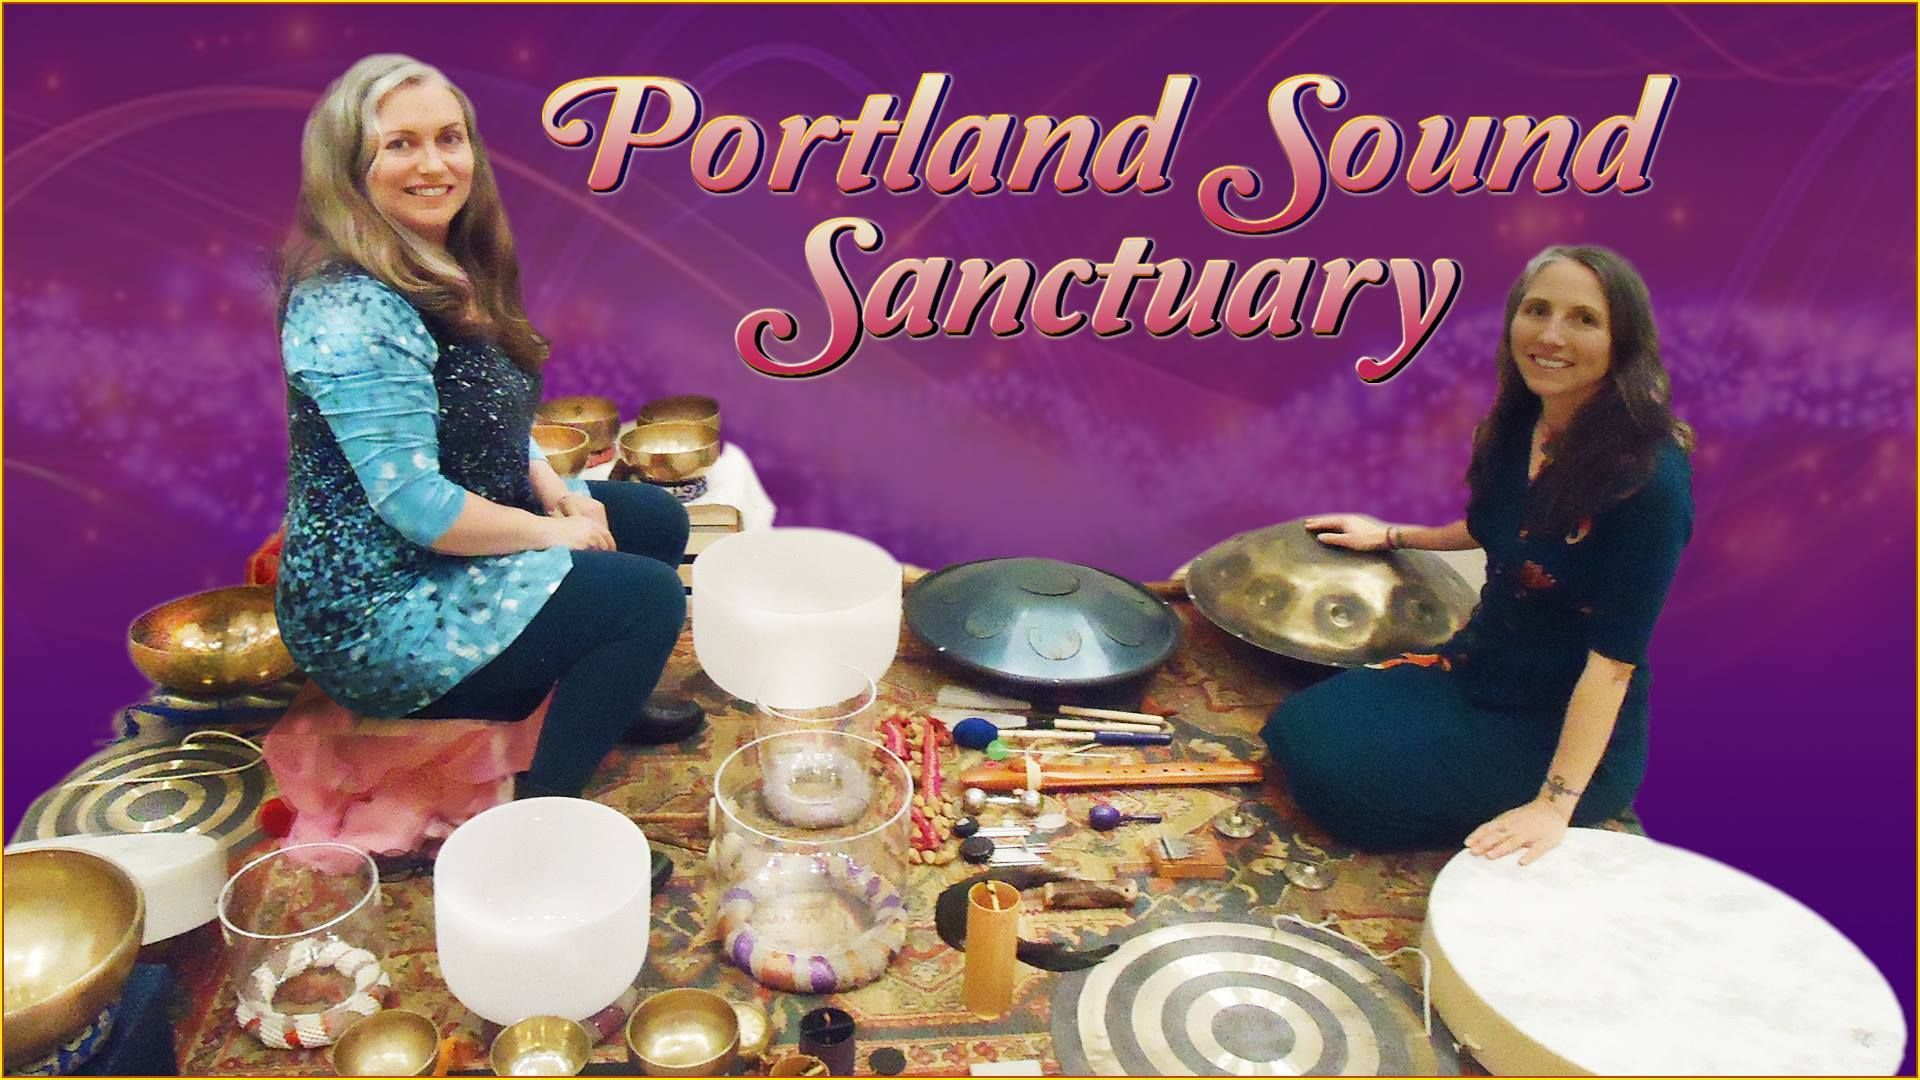 Portland Sound Sanctuary